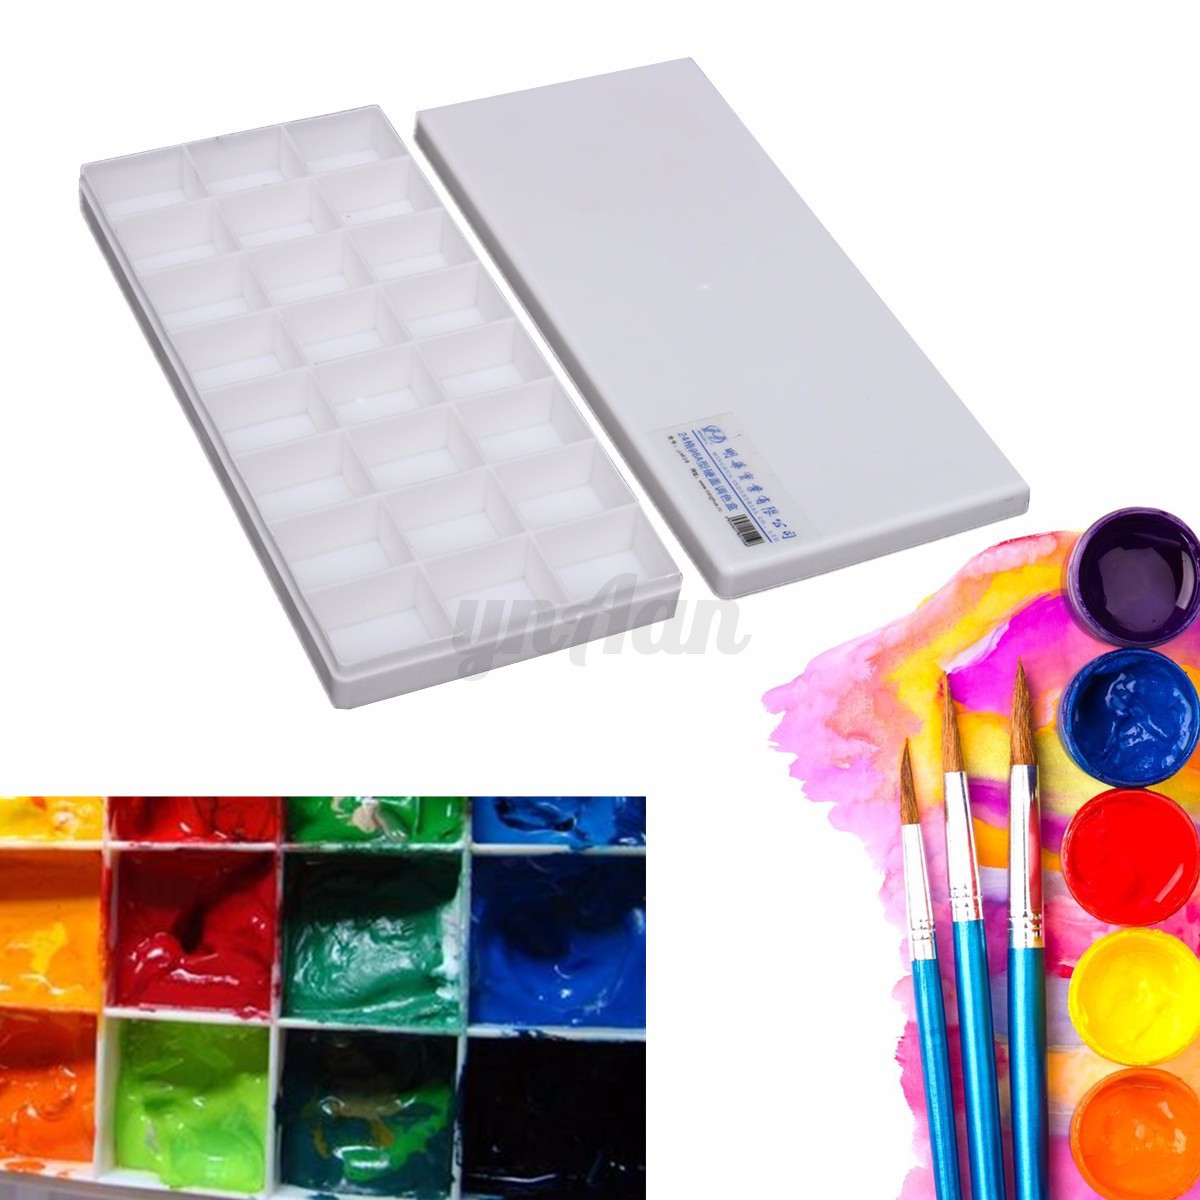 artist plastic 24 well watercolor paint painting tray art drawing mixing palette ebay. Black Bedroom Furniture Sets. Home Design Ideas